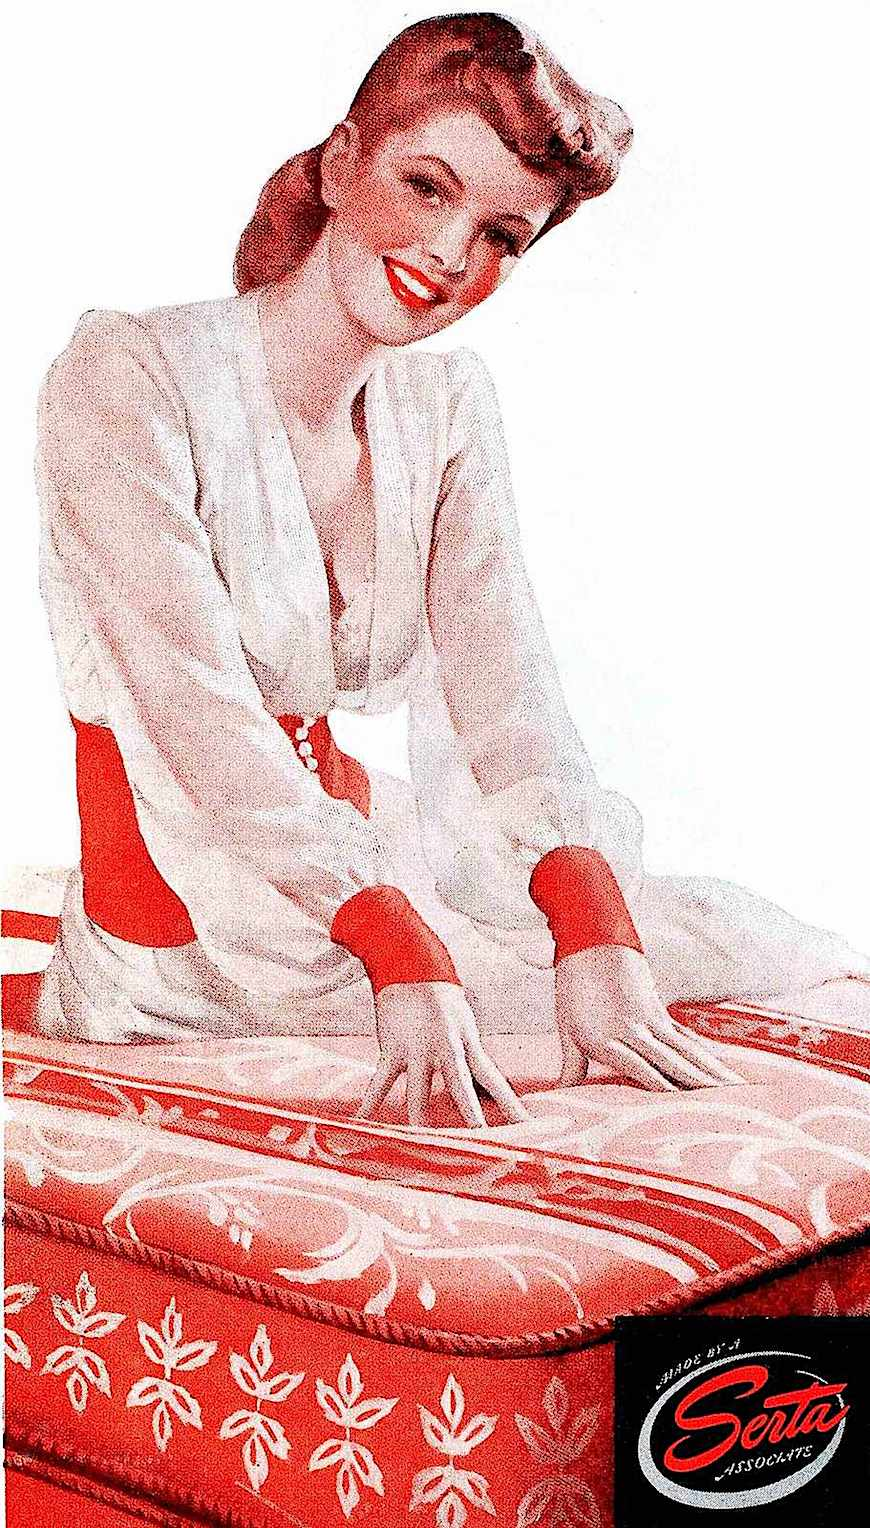 a 1943 advertising illustration in red for Serta mattresses